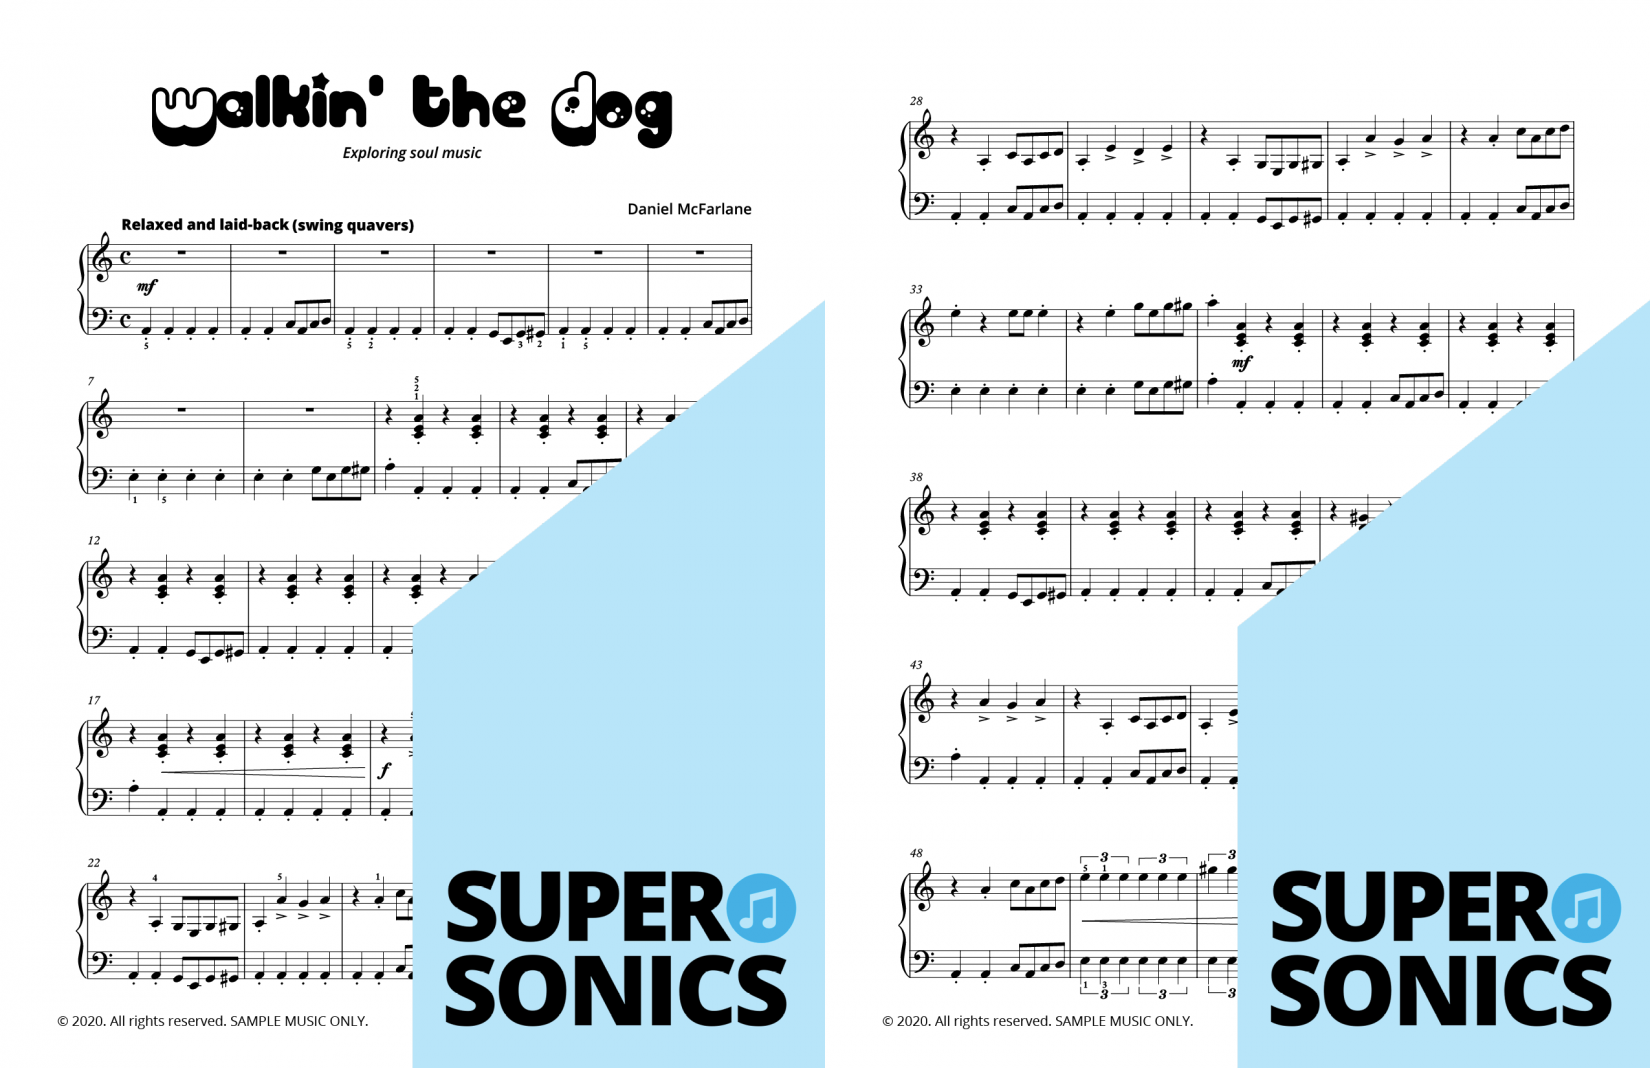 Supersonics Piano Jazzy samples